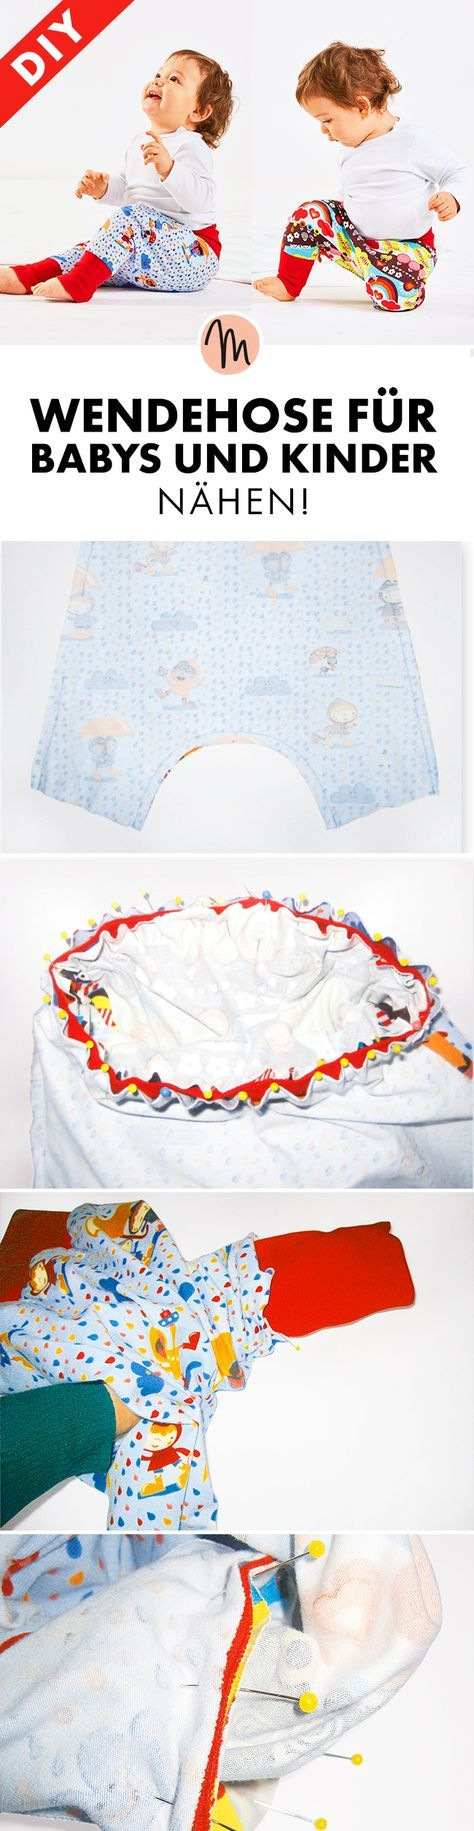 70 best Baby images on Pinterest | Sewing for kids, Sewing patterns ...